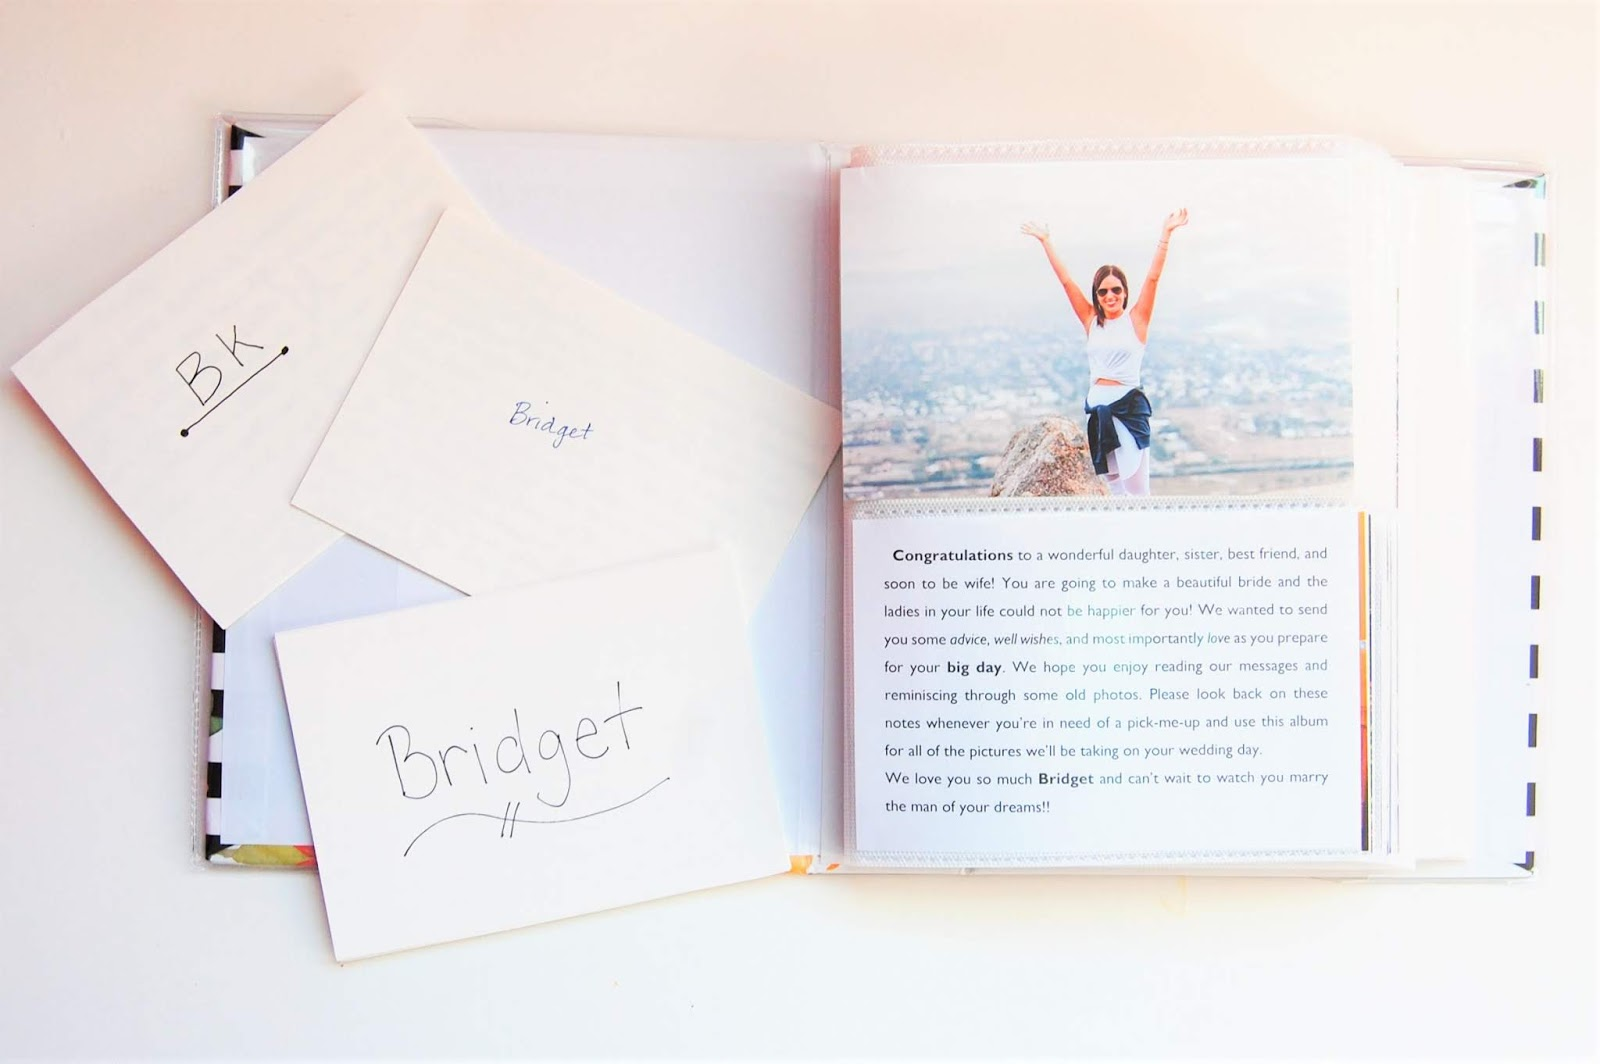 Wedding book of letters kpapreps wedding book of letters my best friend got married spiritdancerdesigns Image collections